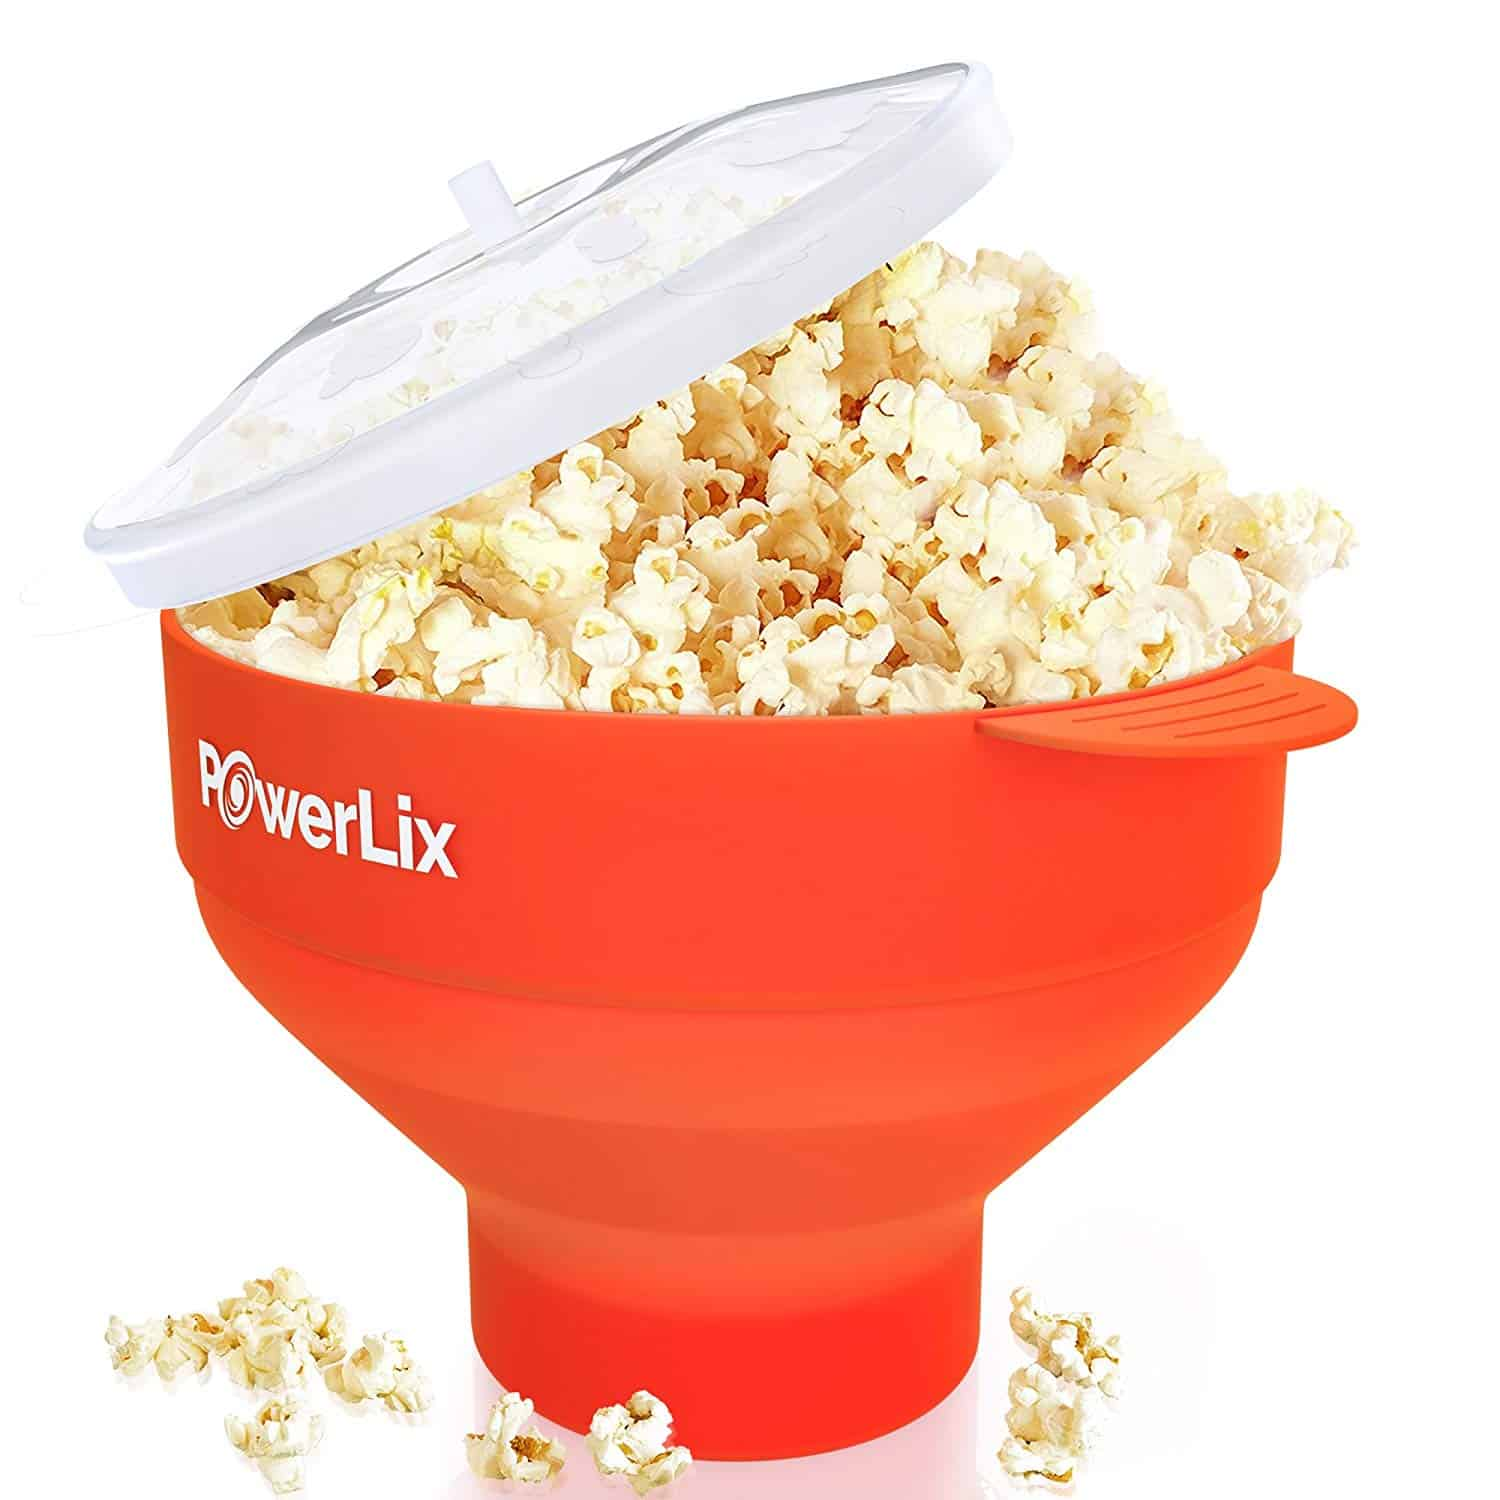 PowerLix Microwave Popcorn Popper Review